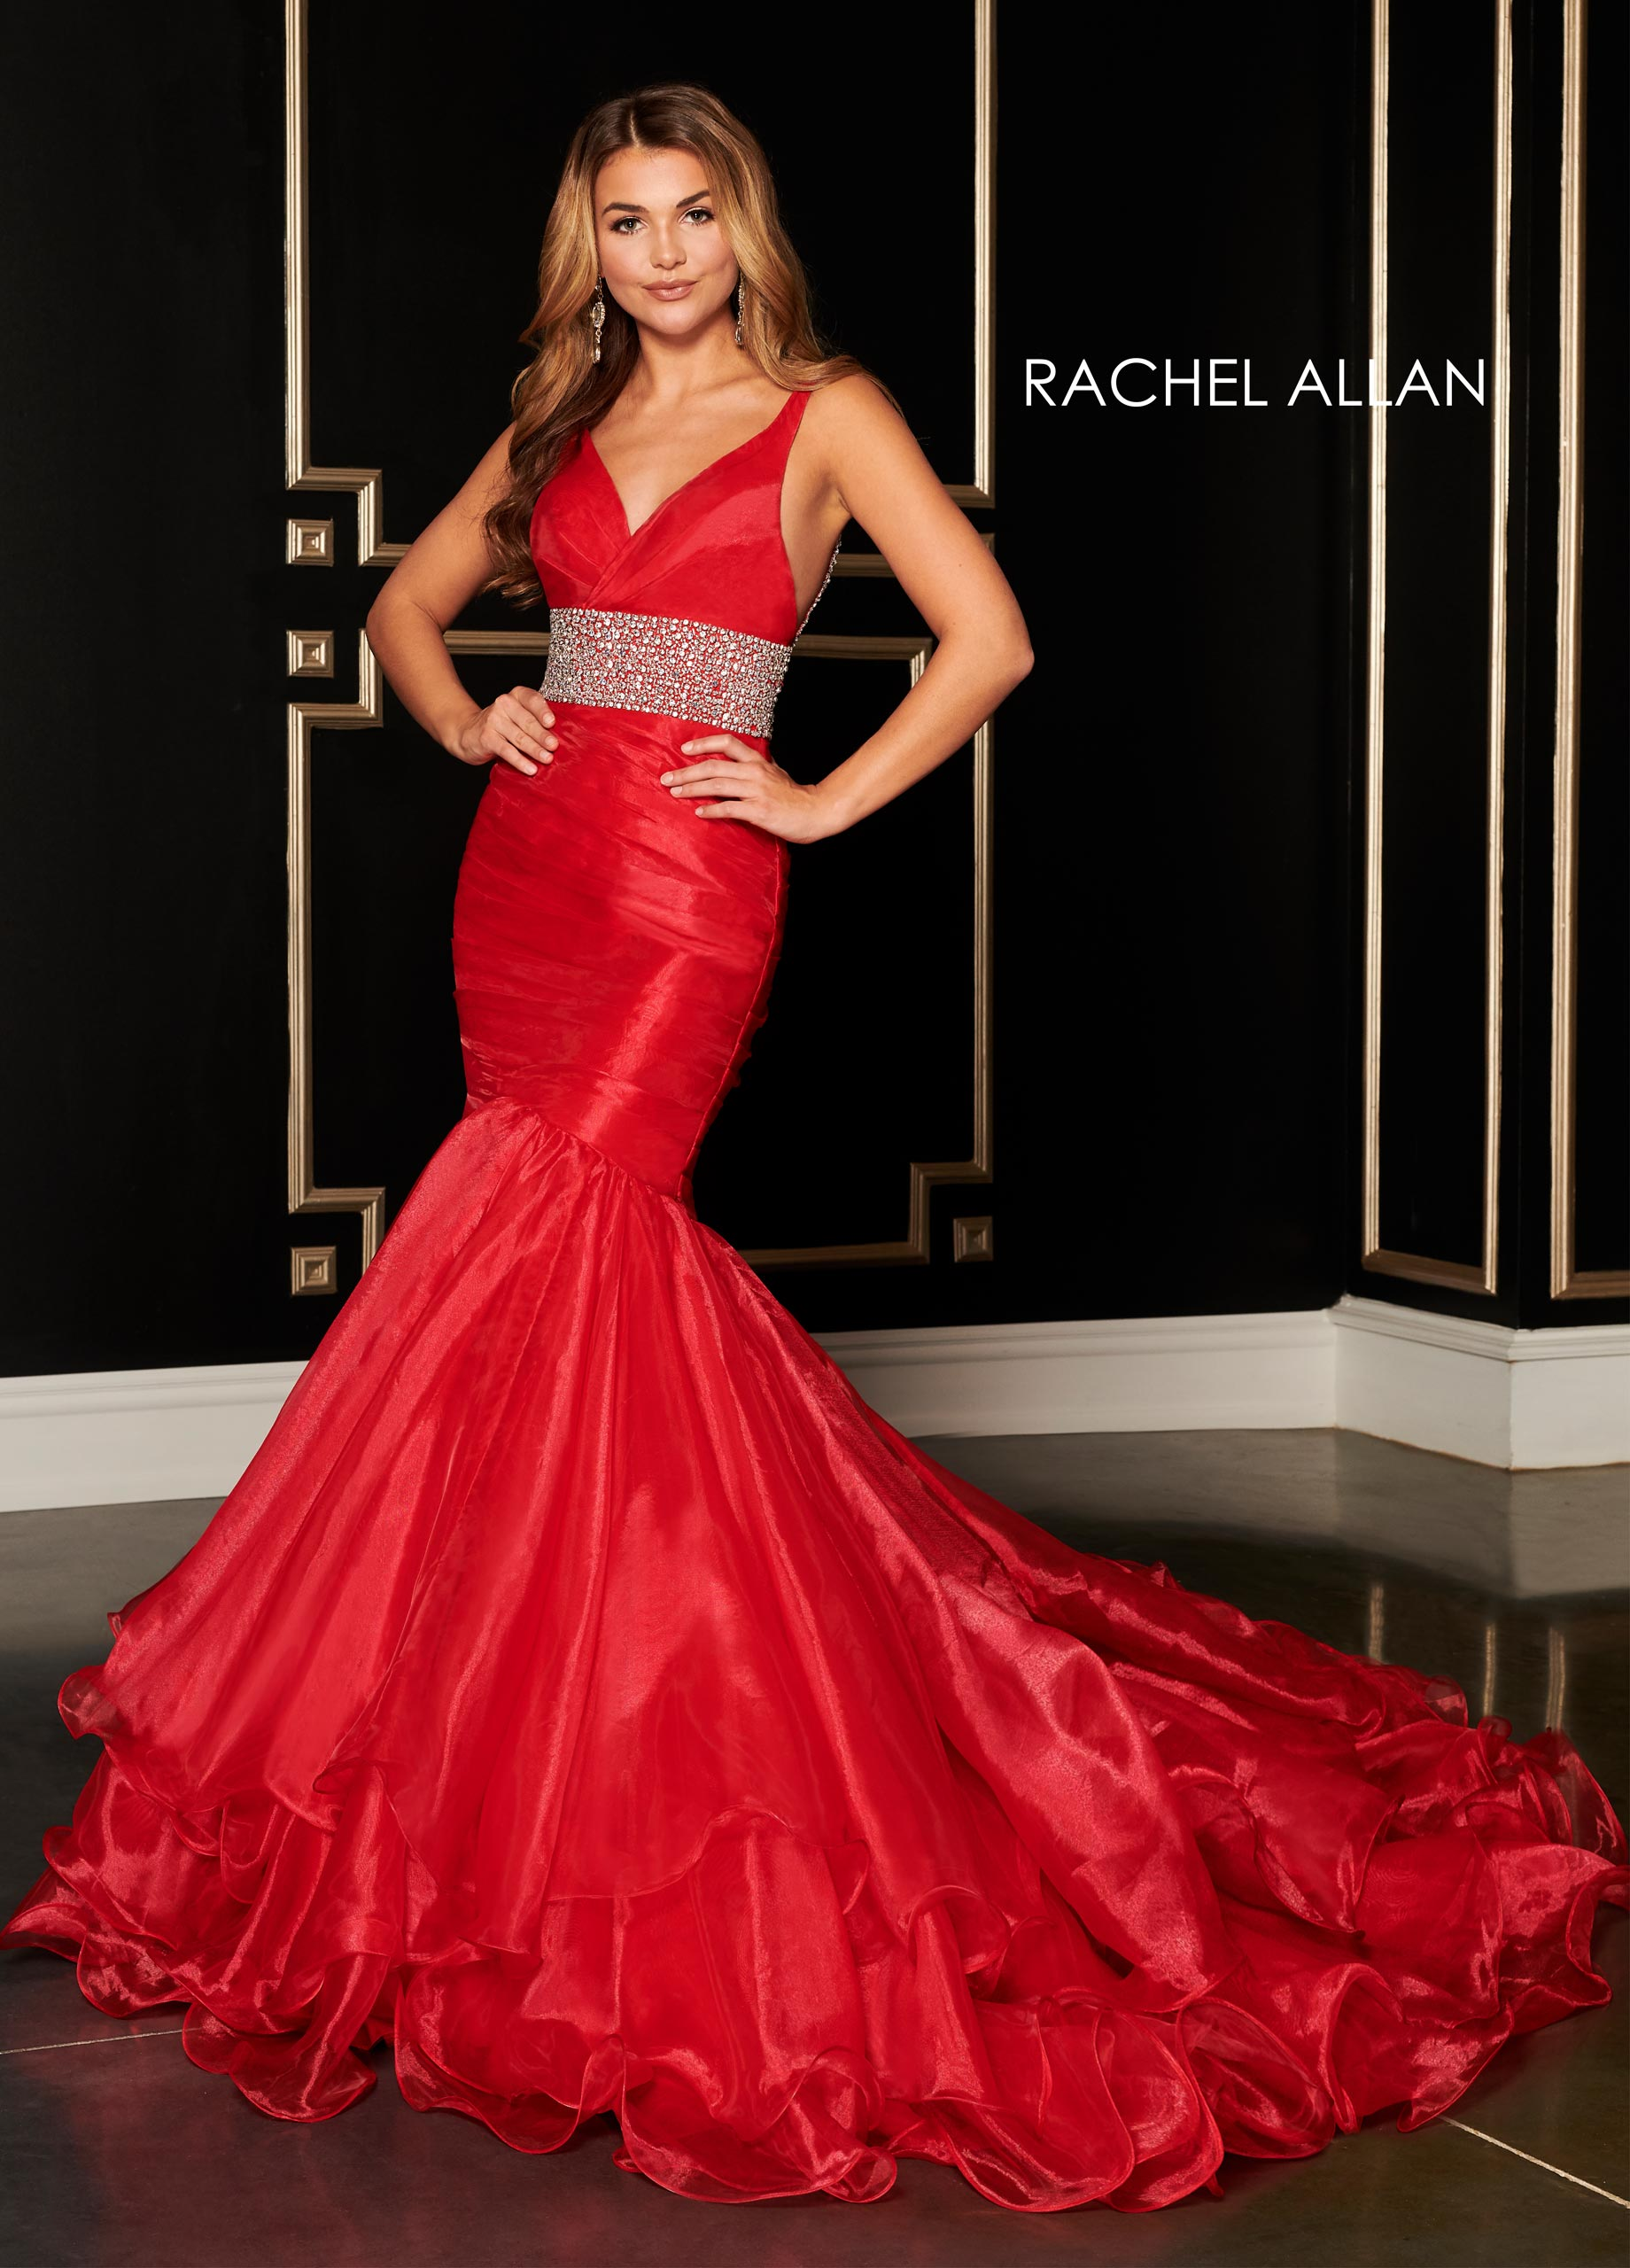 V-Neck Mermaid Pageant Dresses in Red Color